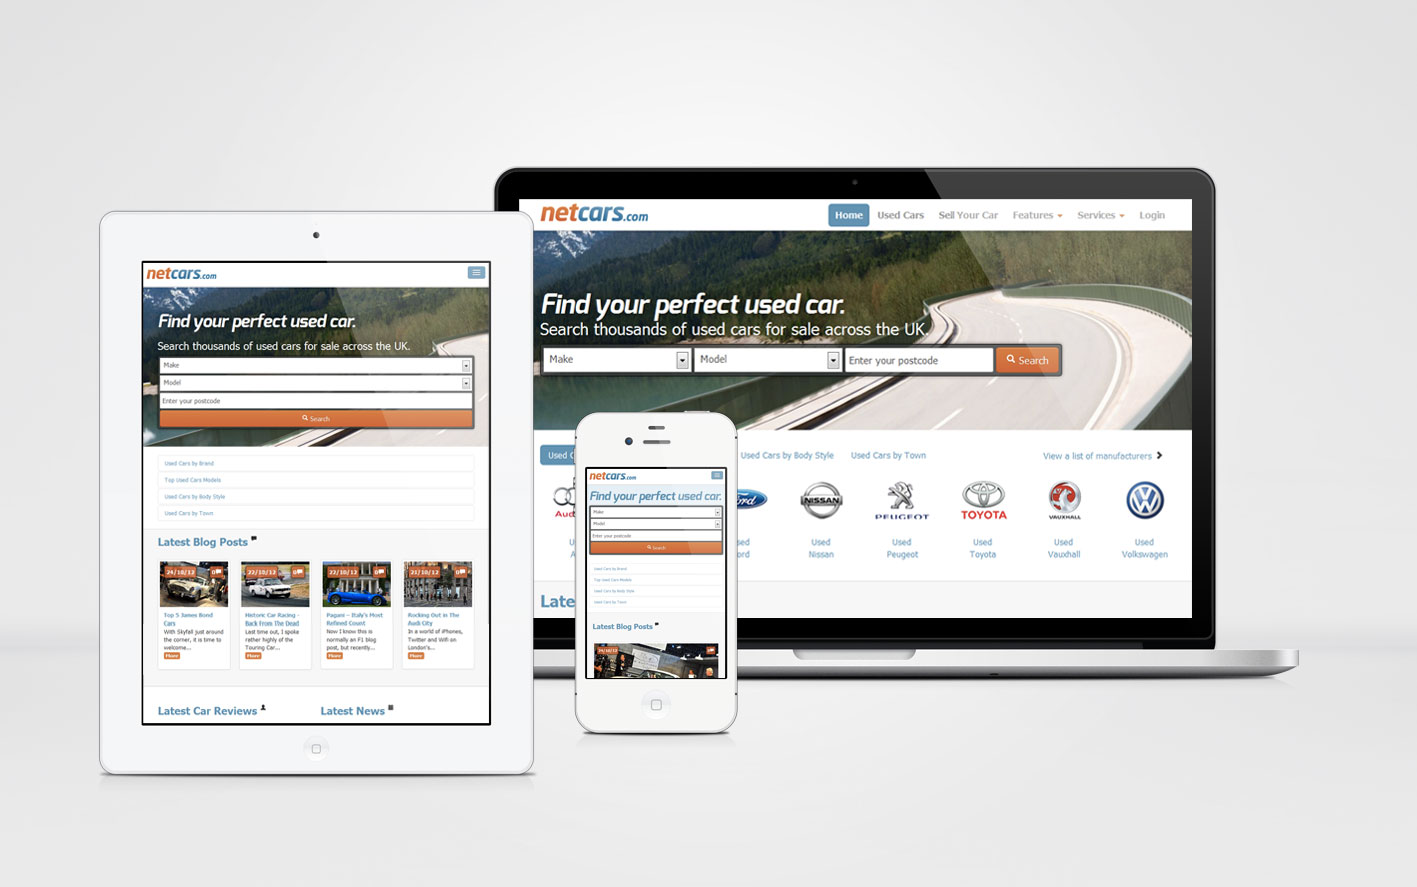 Netcars.com has launched the first fully responsive website in the ...